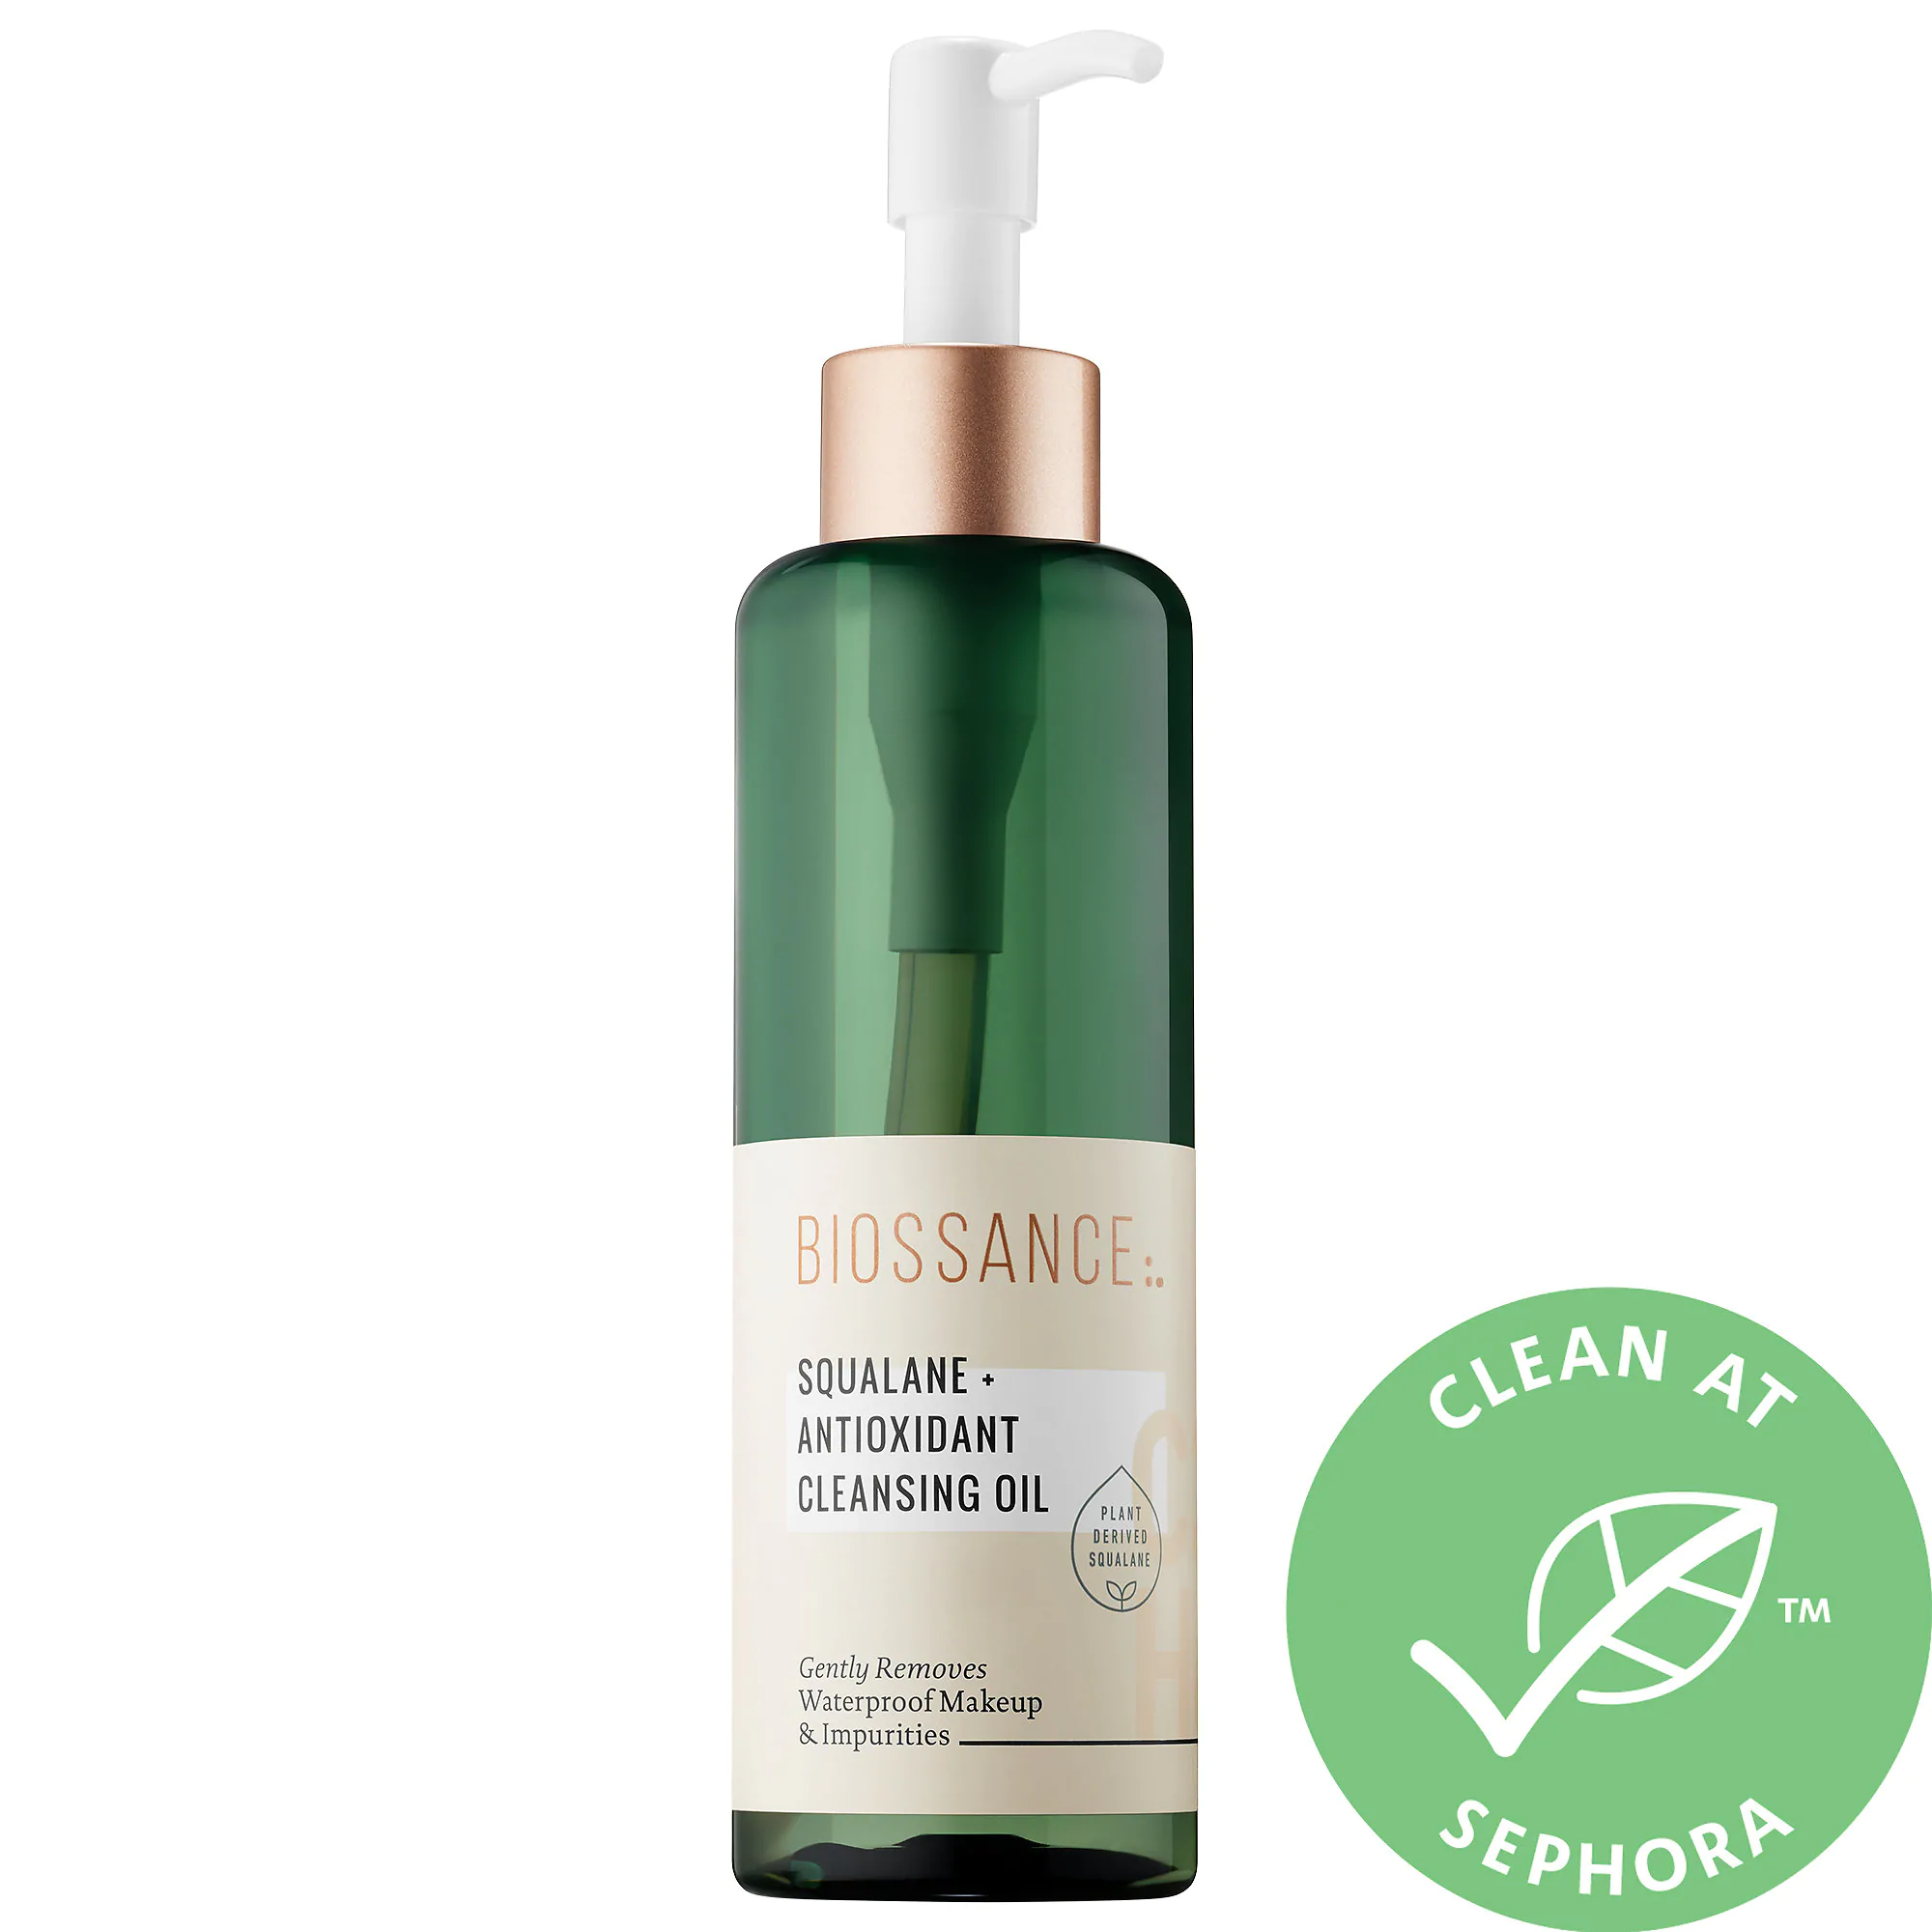 Biossance Squalane + Antioxidant Cleansing Oil